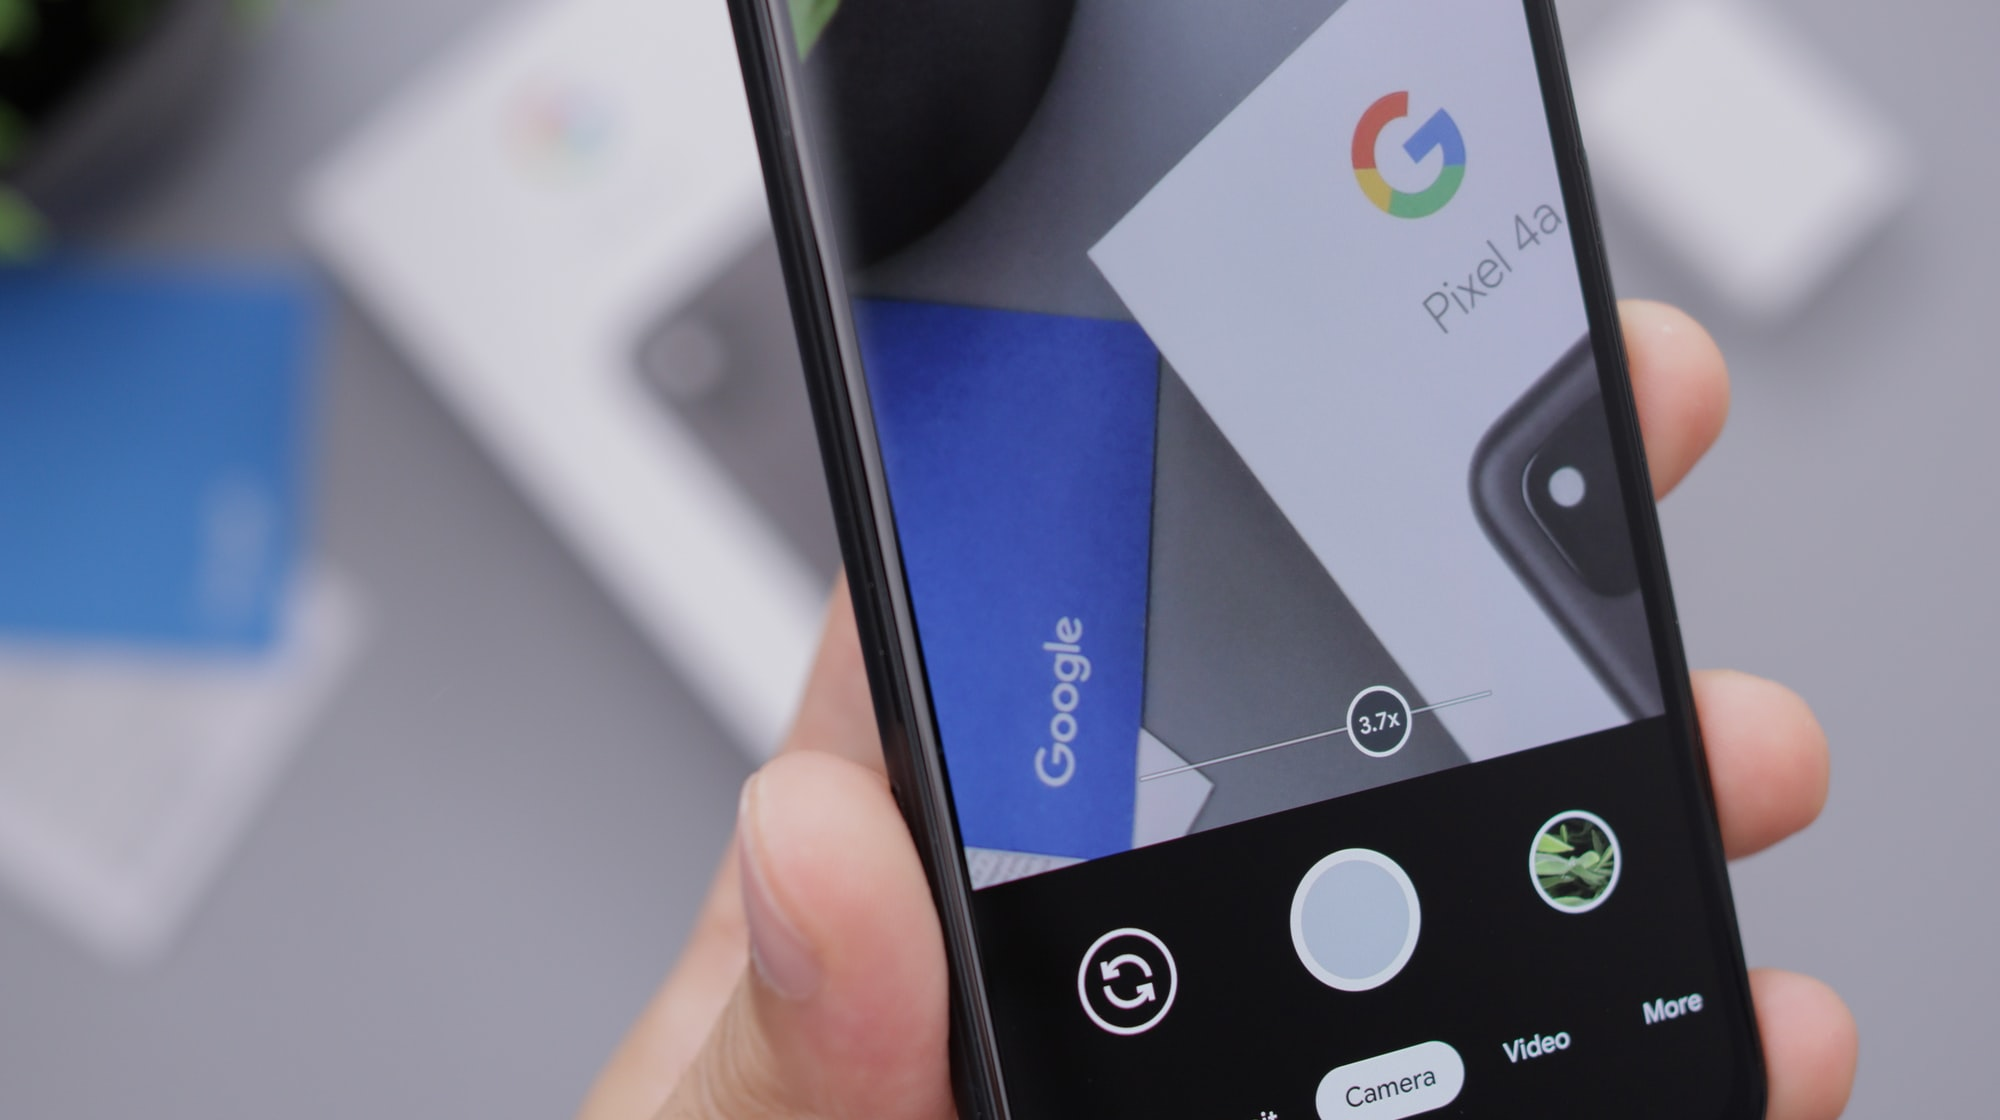 Taking a Photo with a Google Android Smartphone